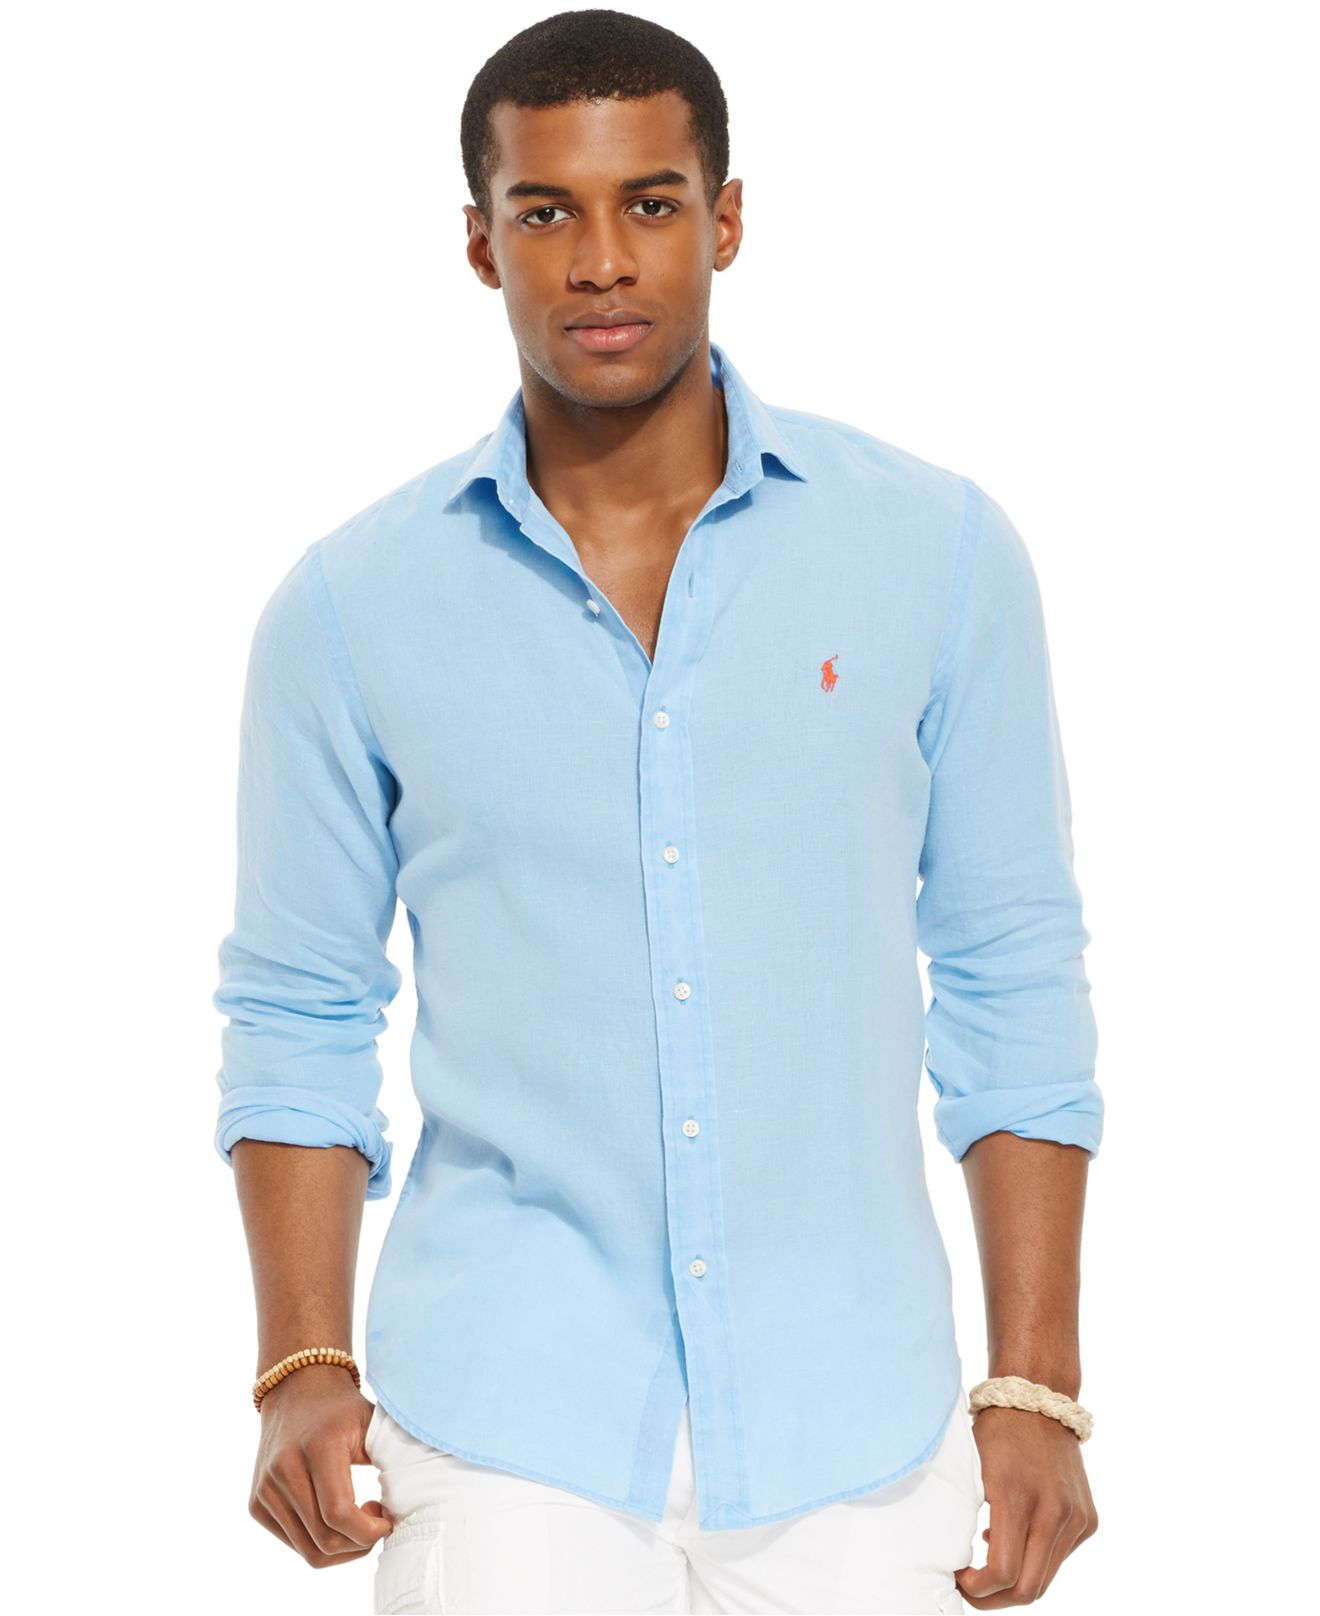 polo ralph lauren linen sport shirt in blue for men lyst